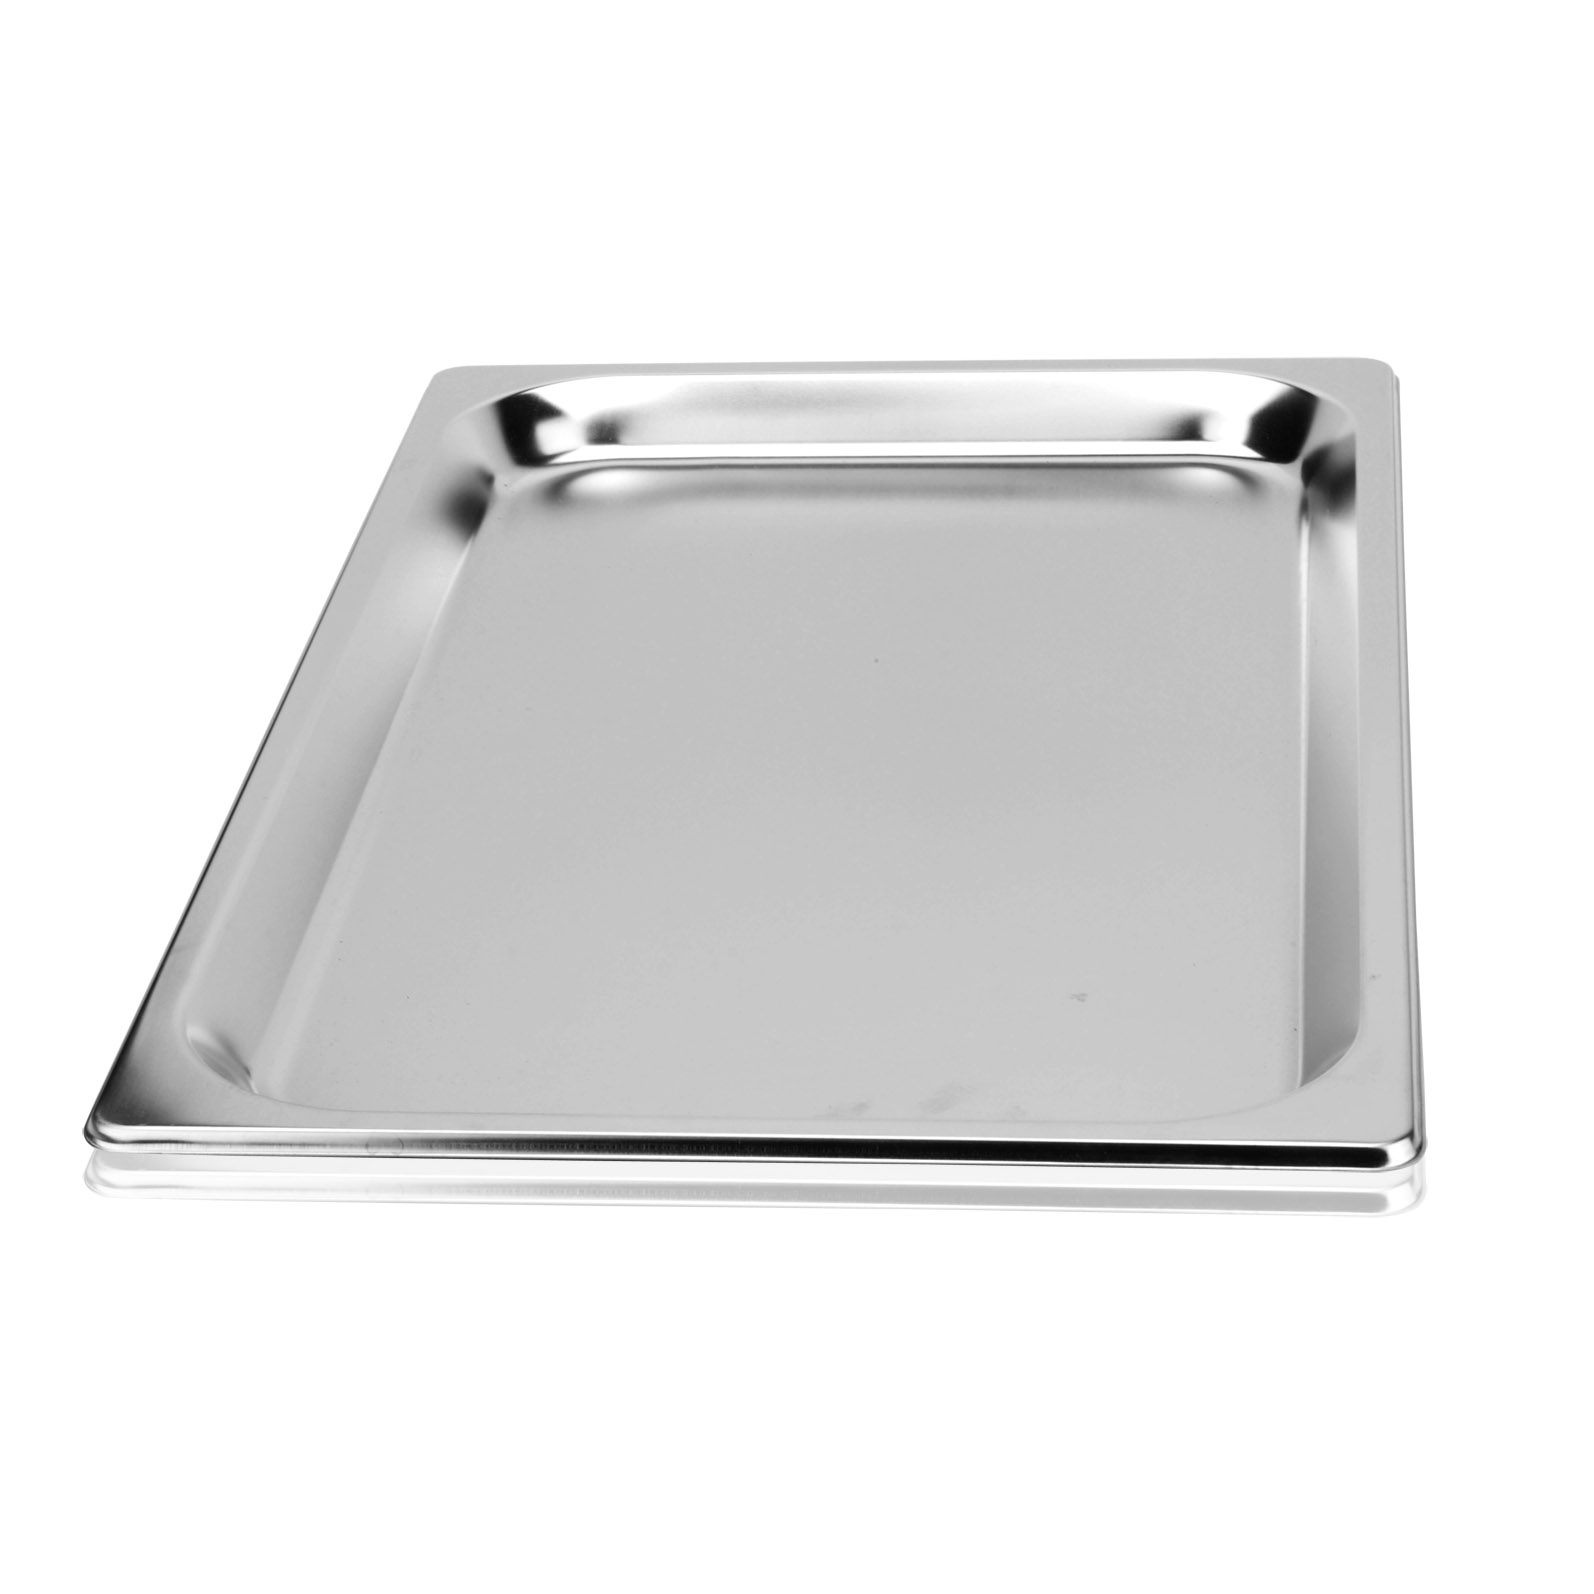 1/1 piece of Stainless steel square dinner plates american style 2.5cm kitchen square dishes square pot-in Tureens from Home \u0026 Garden on Aliexpress.com ...  sc 1 st  AliExpress.com & 1/1 piece of Stainless steel square dinner plates american style 2.5 ...